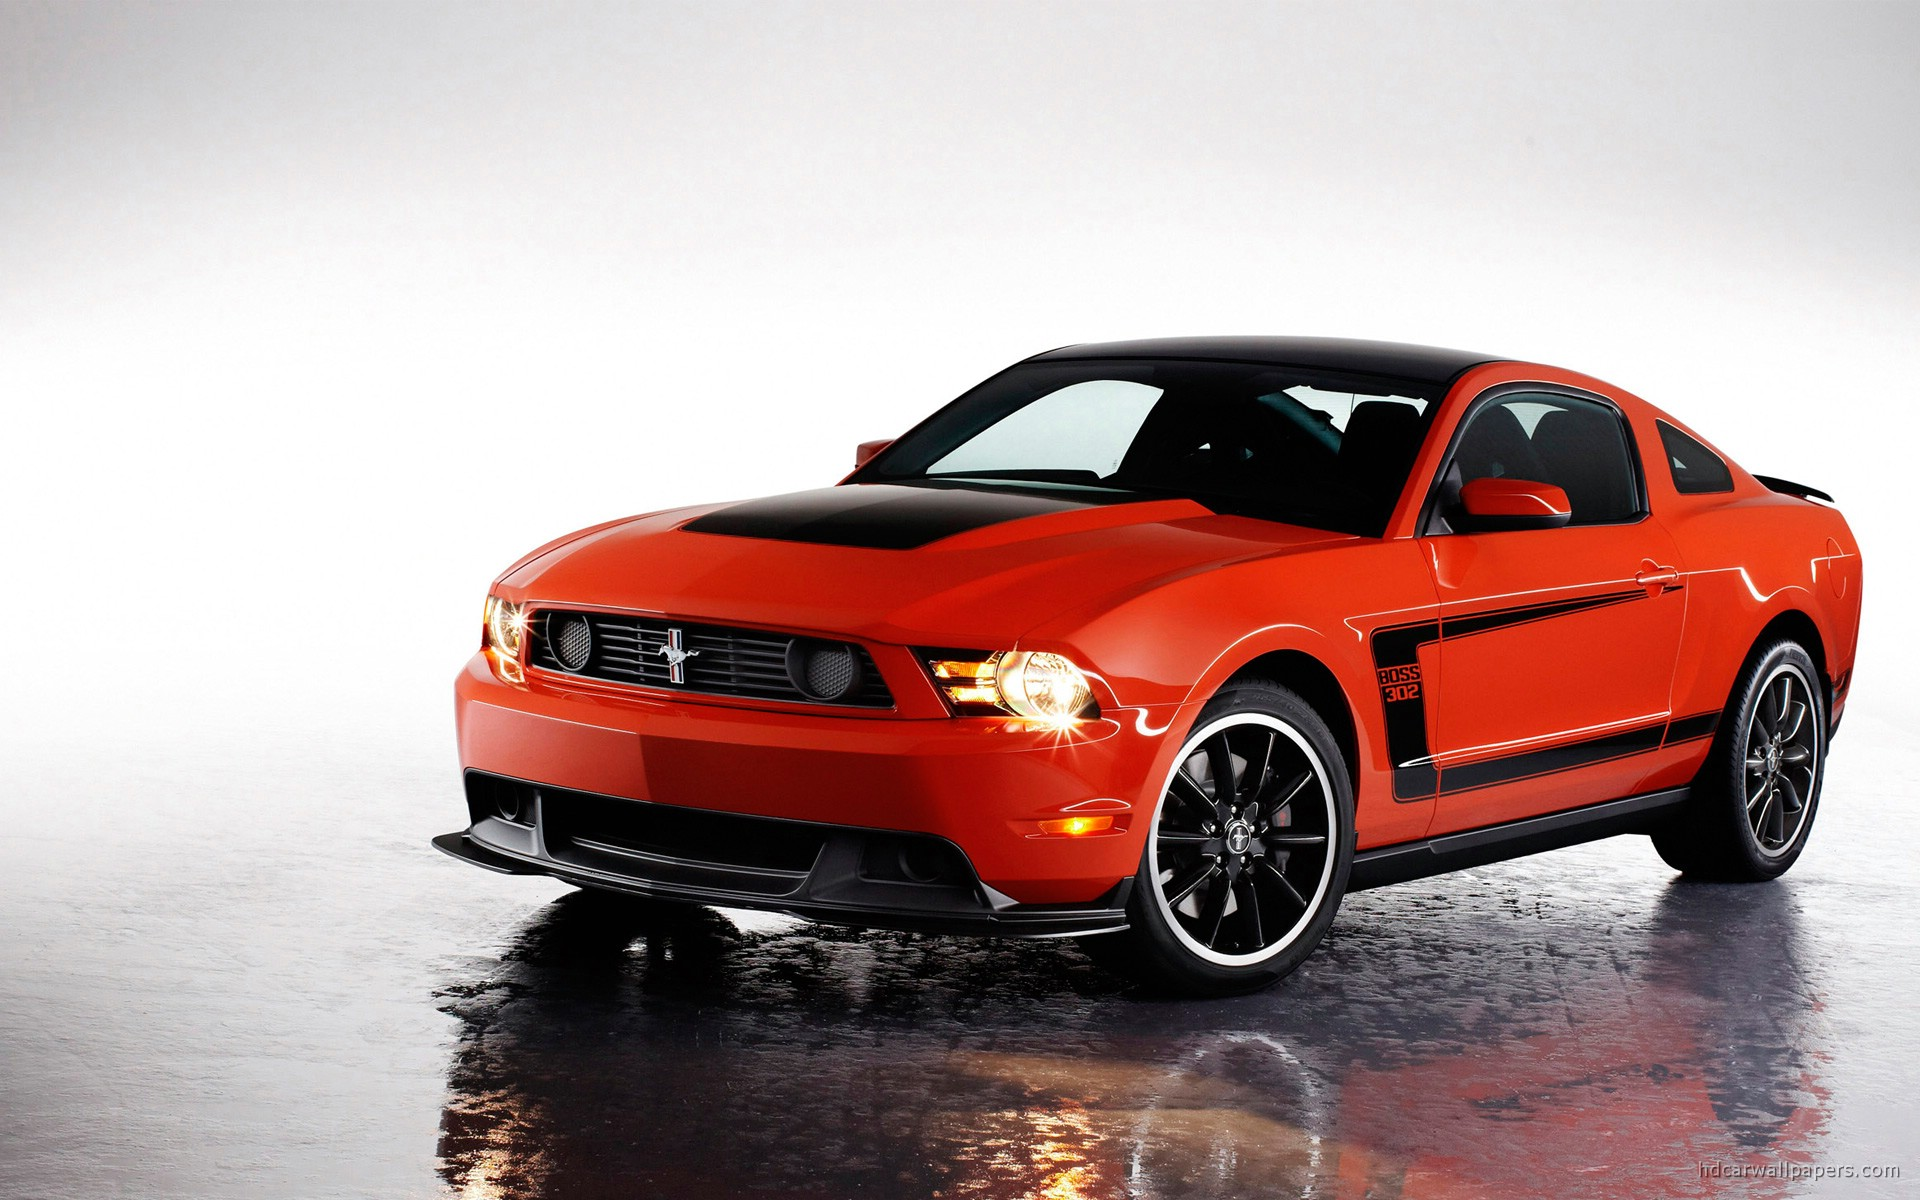 2012 ford mustang boss 3 wallpaper hd car wallpapers id 1870. Black Bedroom Furniture Sets. Home Design Ideas